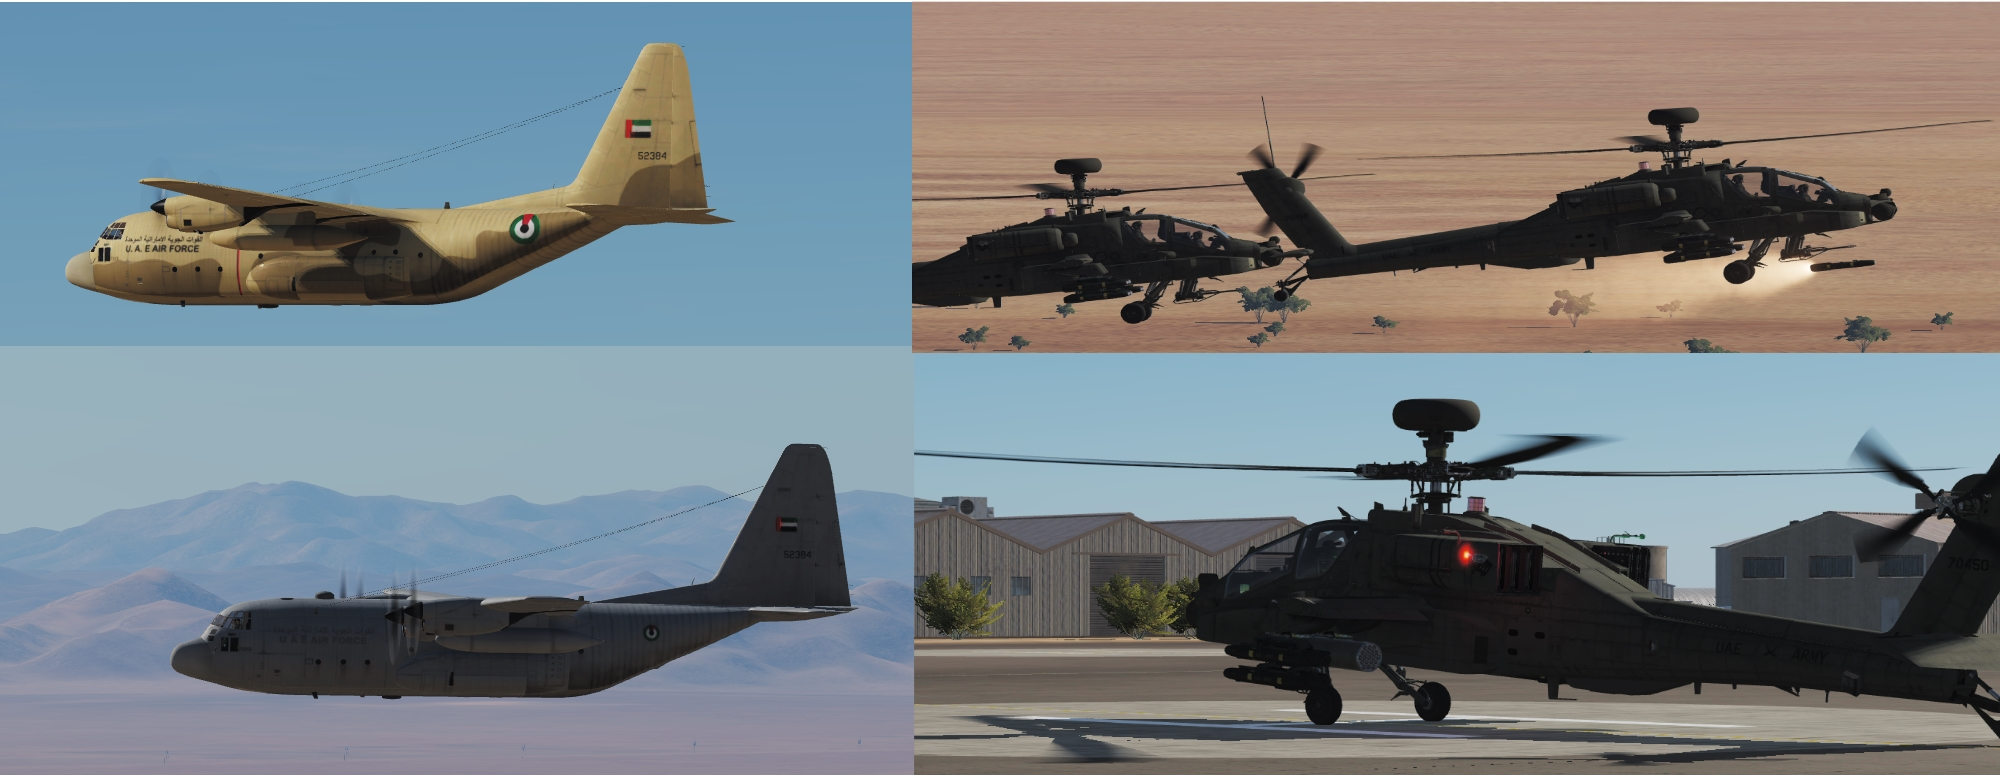 UAE C-130 Two Pack + UAE Army AH-64D